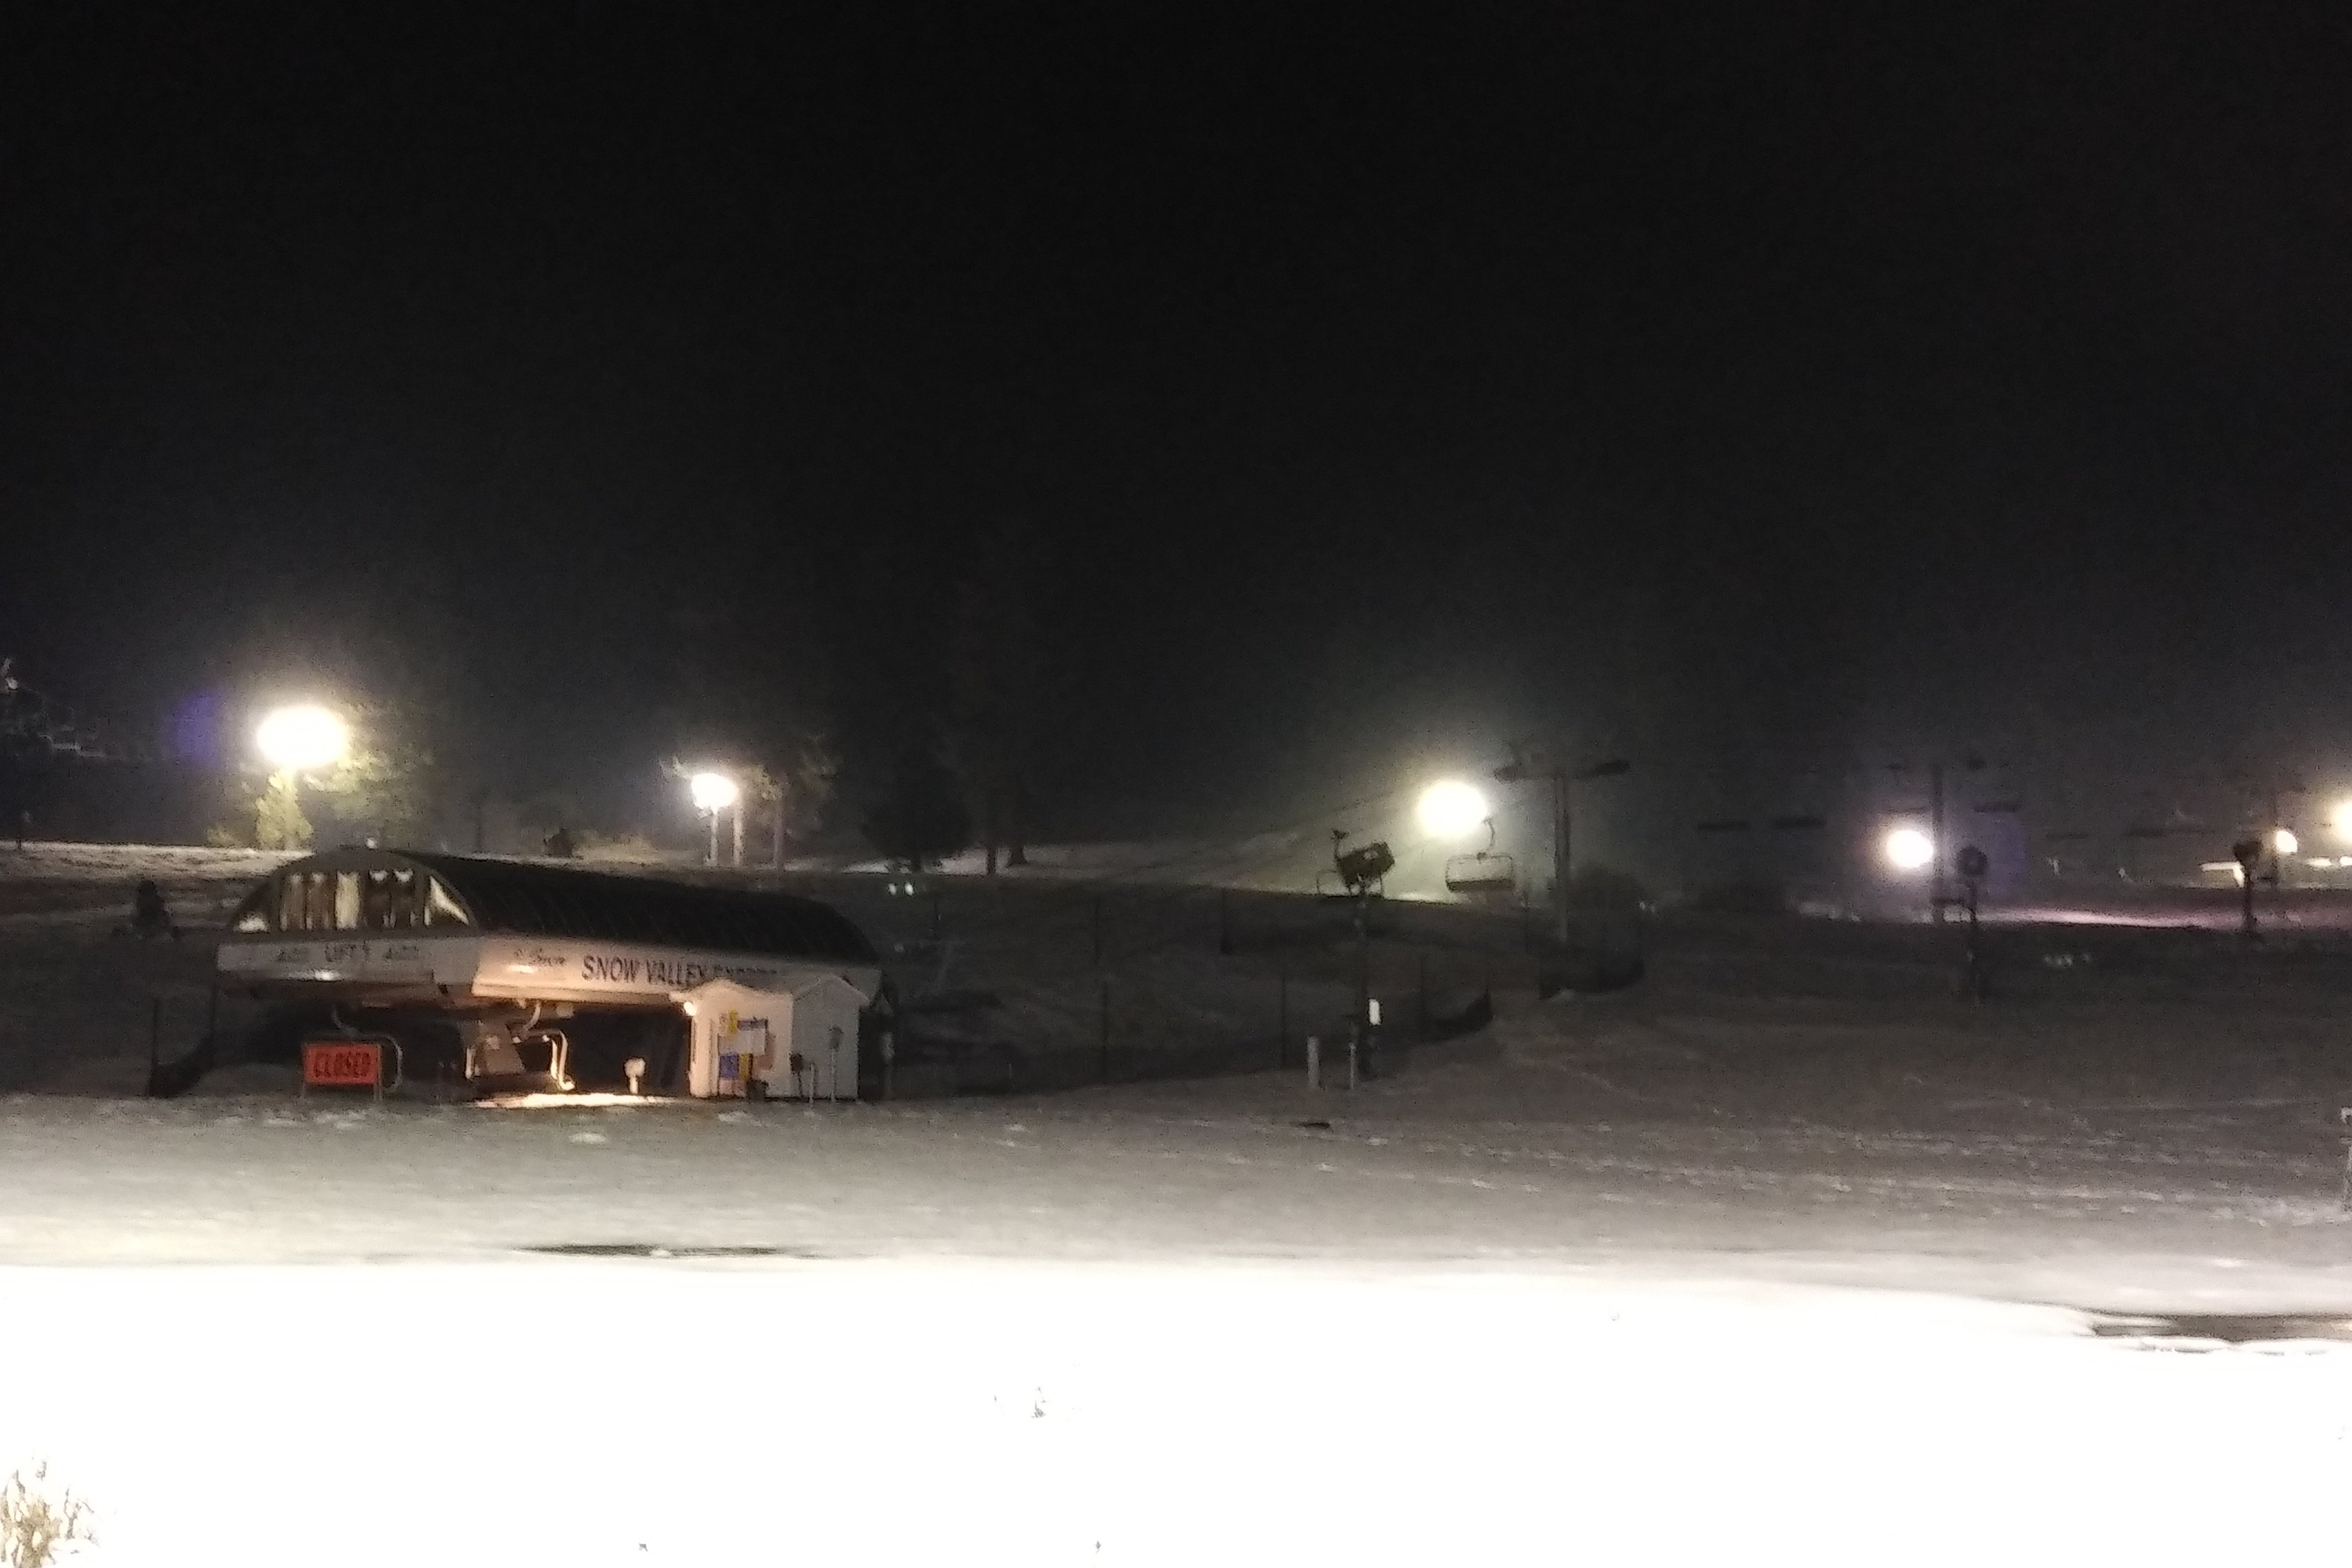 Lights illuminate the slopes during nighttime